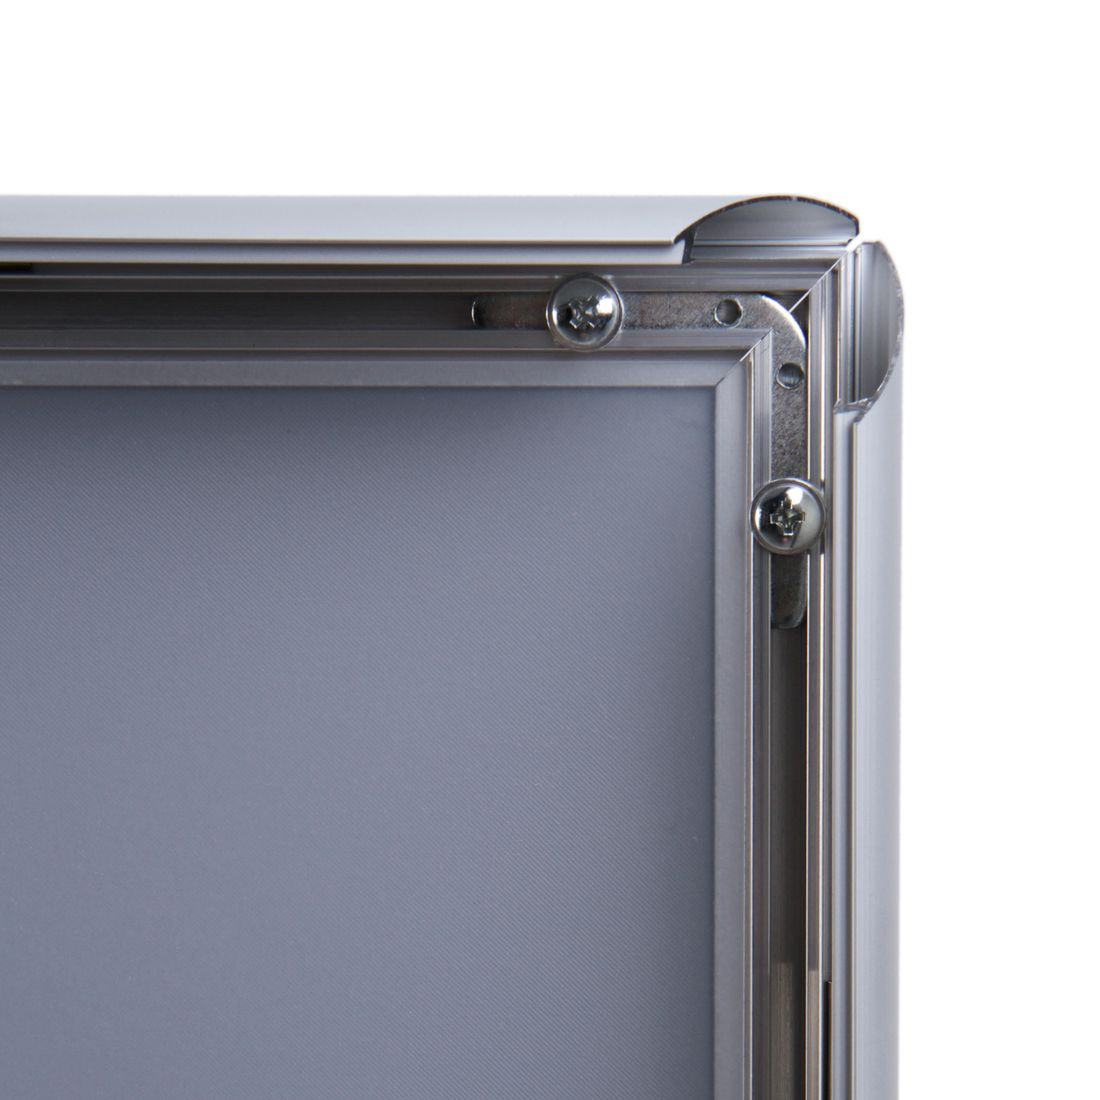 Snap frame with sharp corners